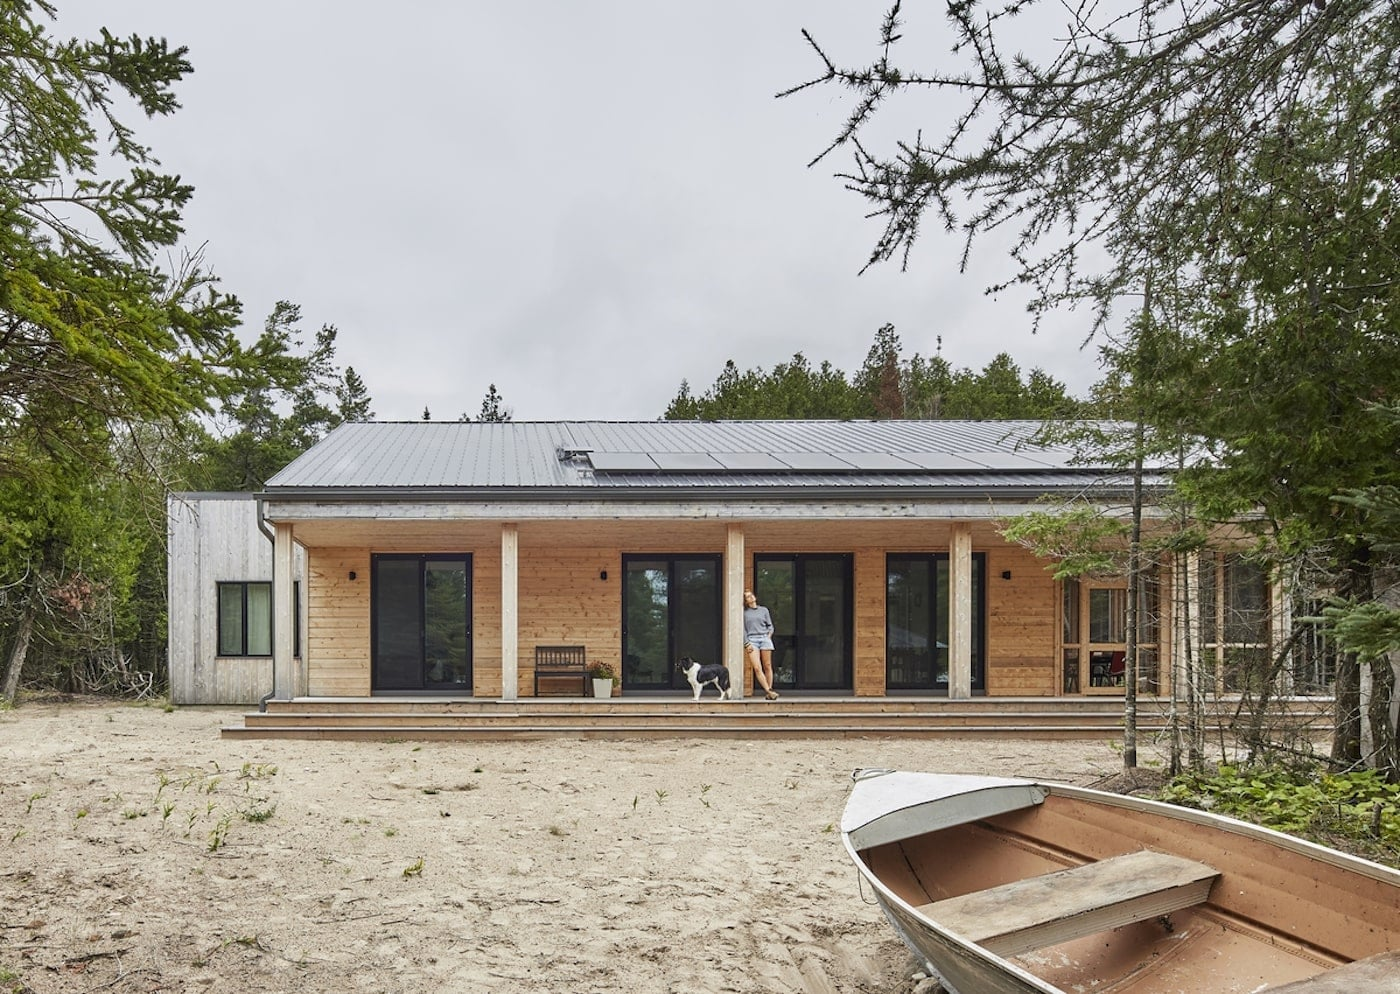 Boat on sand in front of off-grid eco home